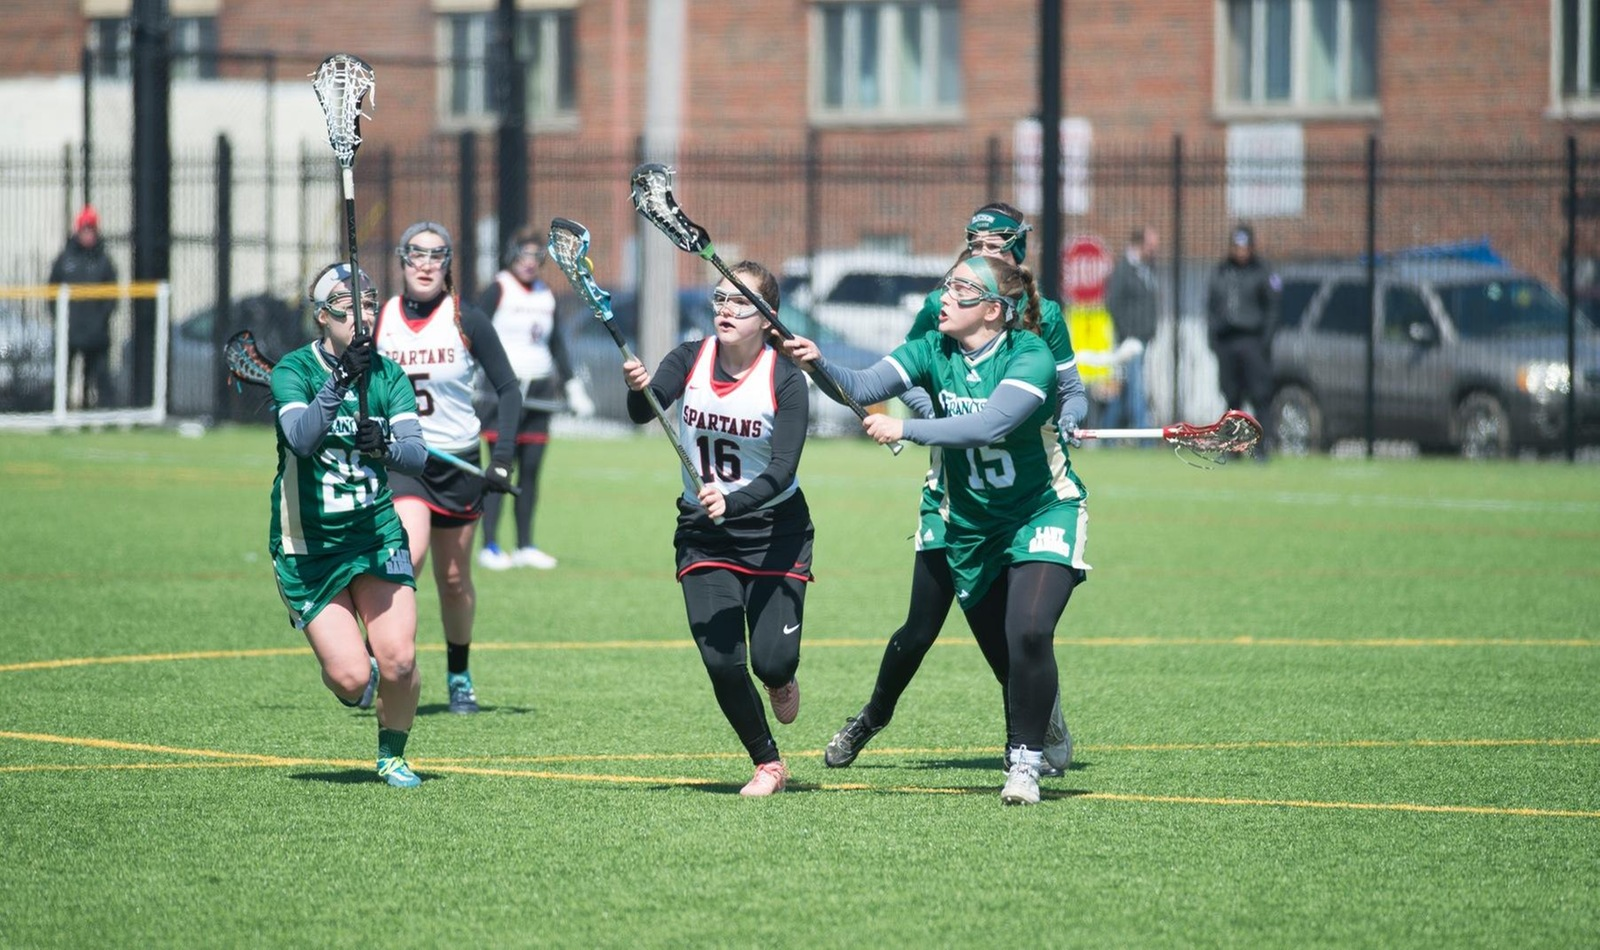 Canton Takes Down D'Youville in Women's Lacrosse